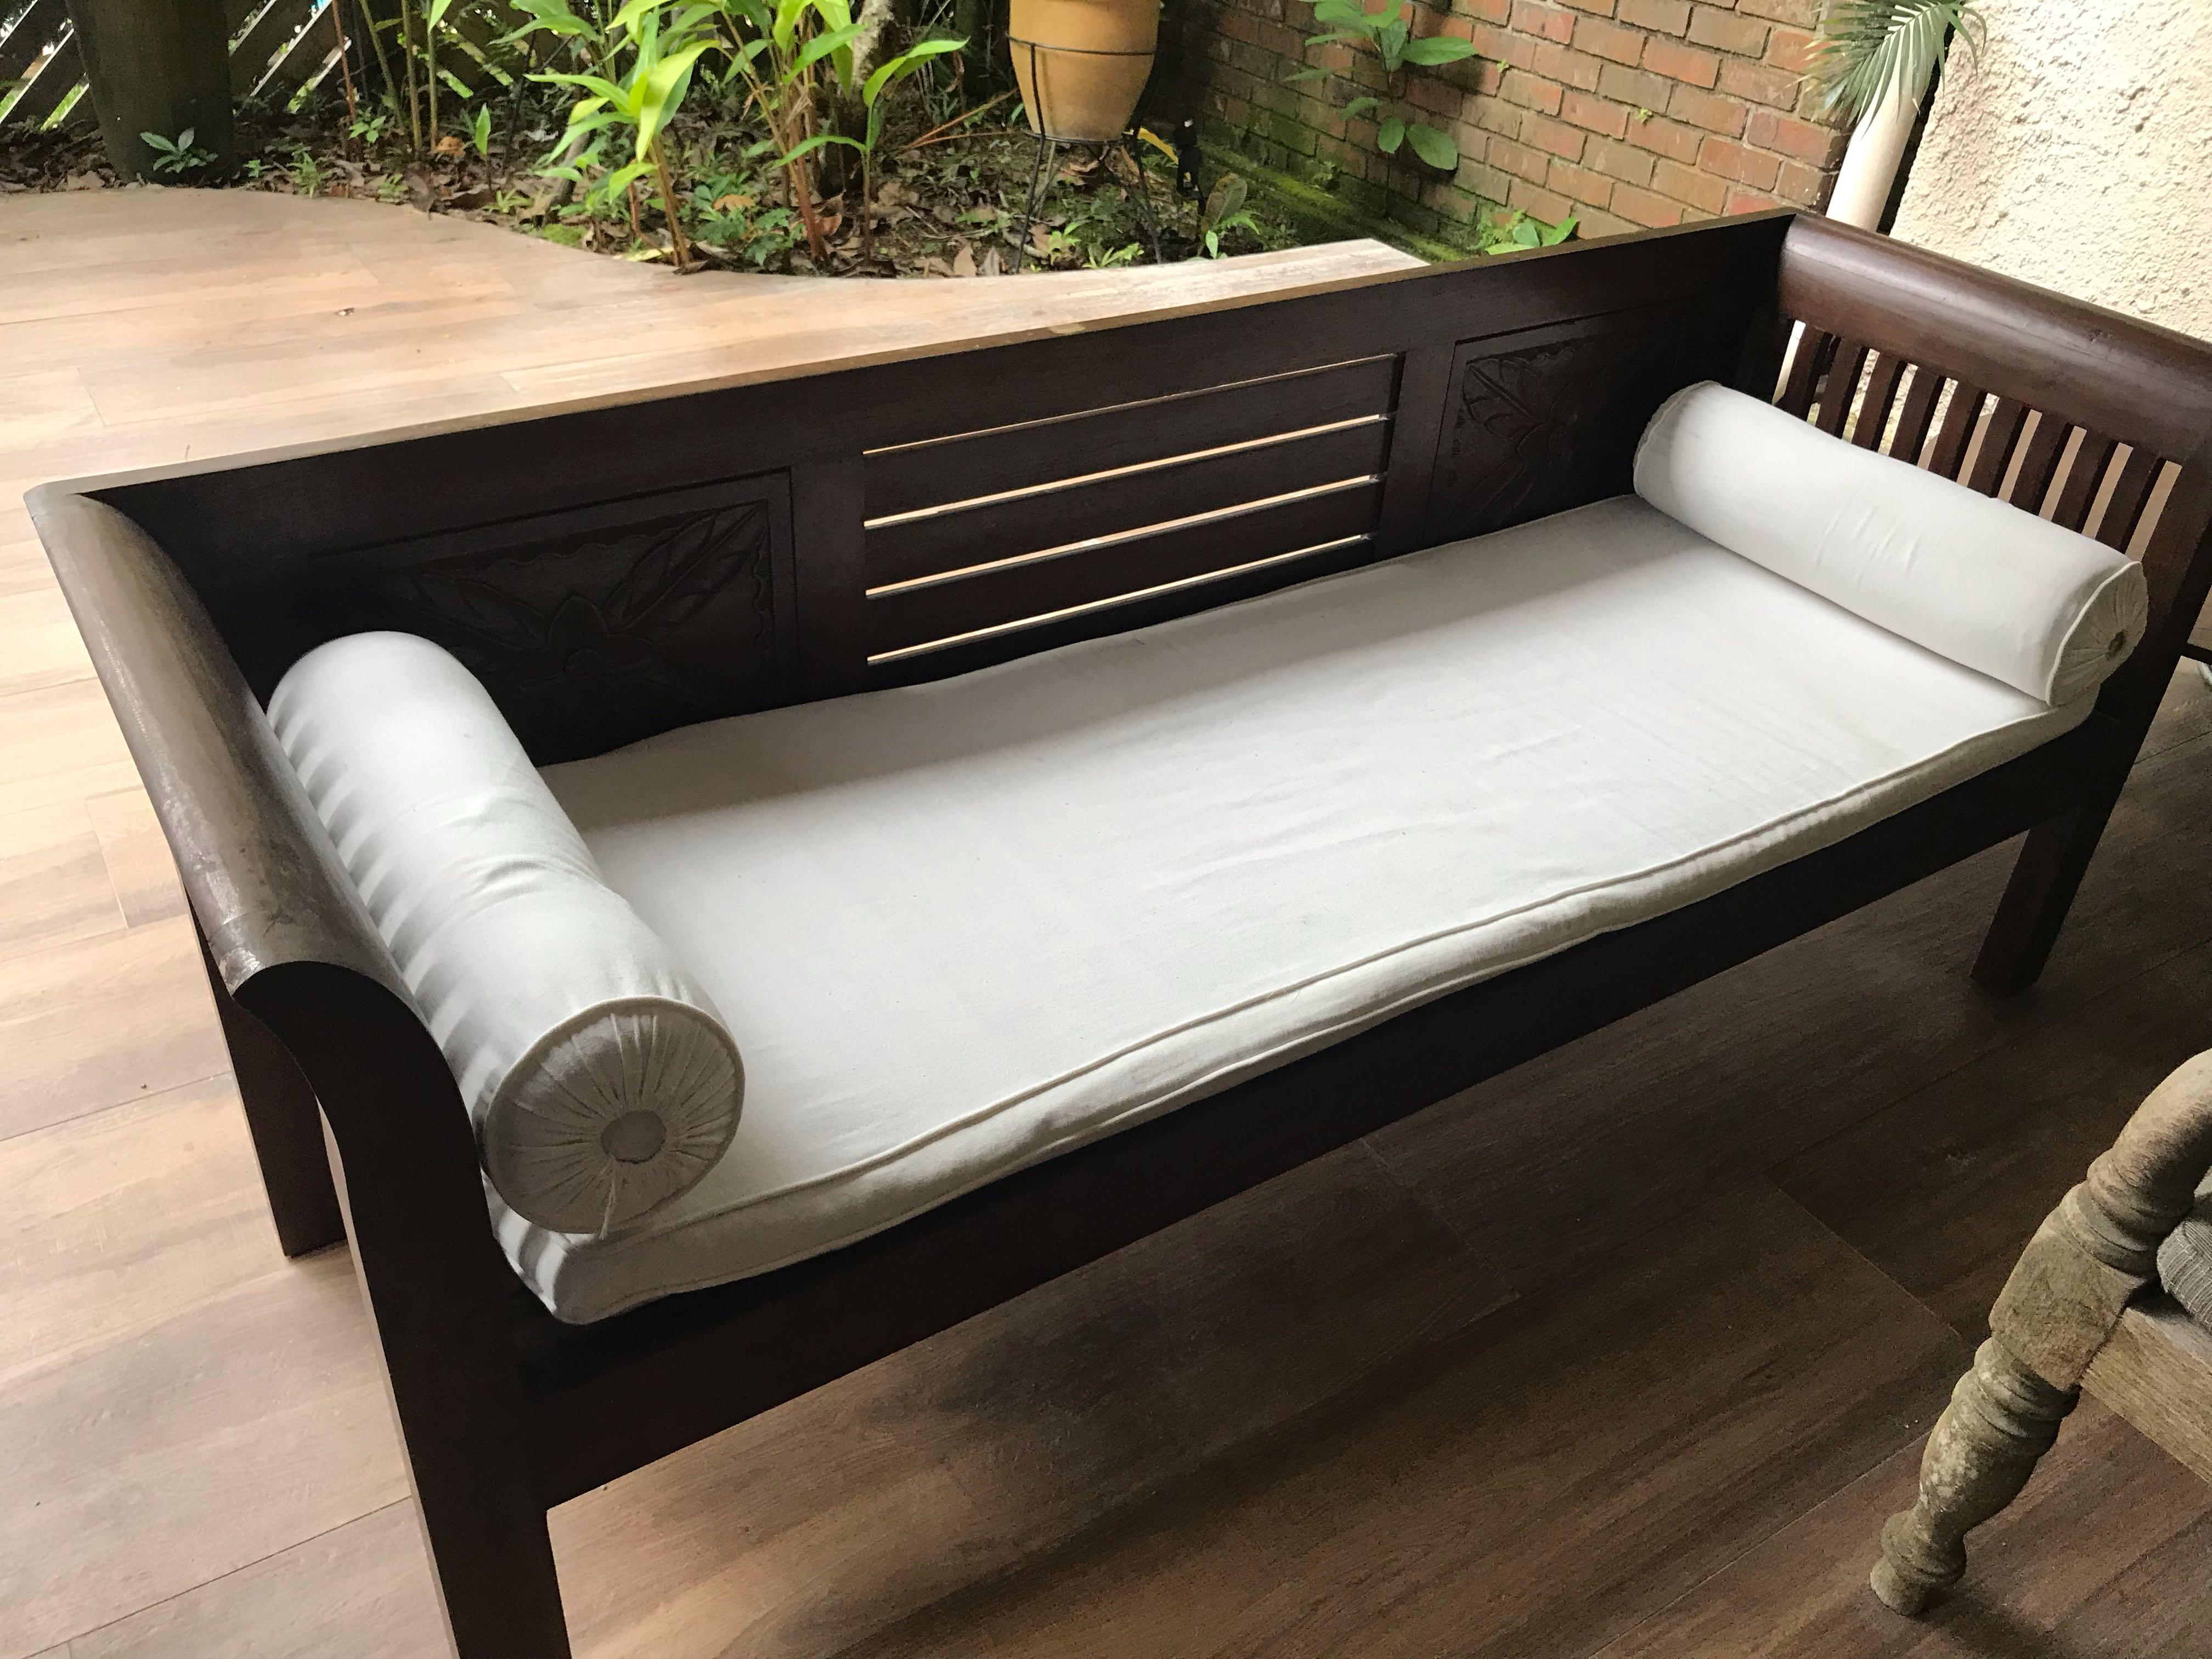 Picture of: Balinese Day Bed Furniture Others On Carousell